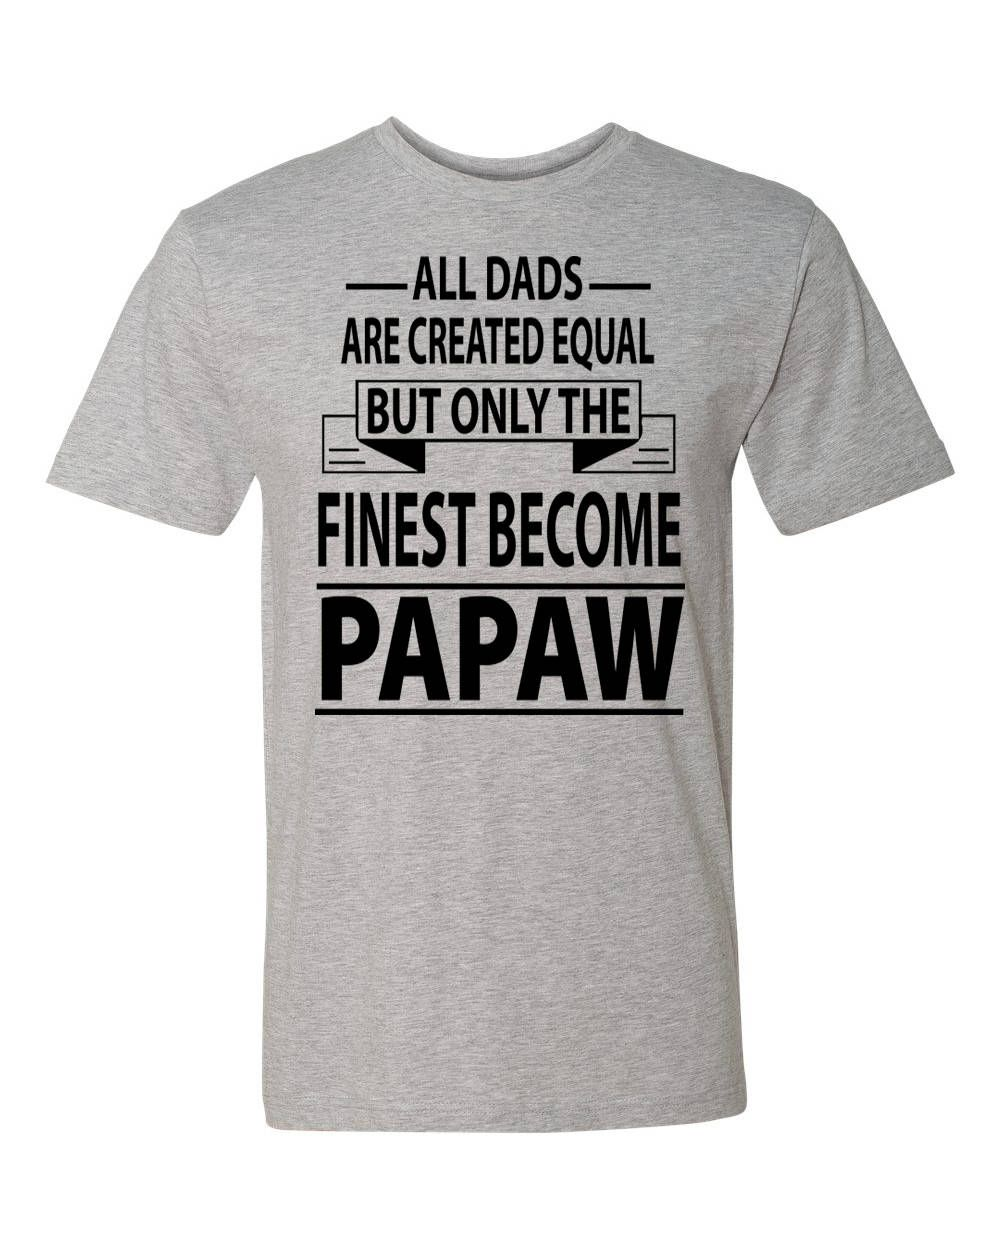 861d82b3 All Men Are Created Equal But Only The Finest Become Papaw - Unisex Shirt - Grandpa  Shirt - Grandpa Gift - Father's Day Gift by FamilyTeeStore on Etsy